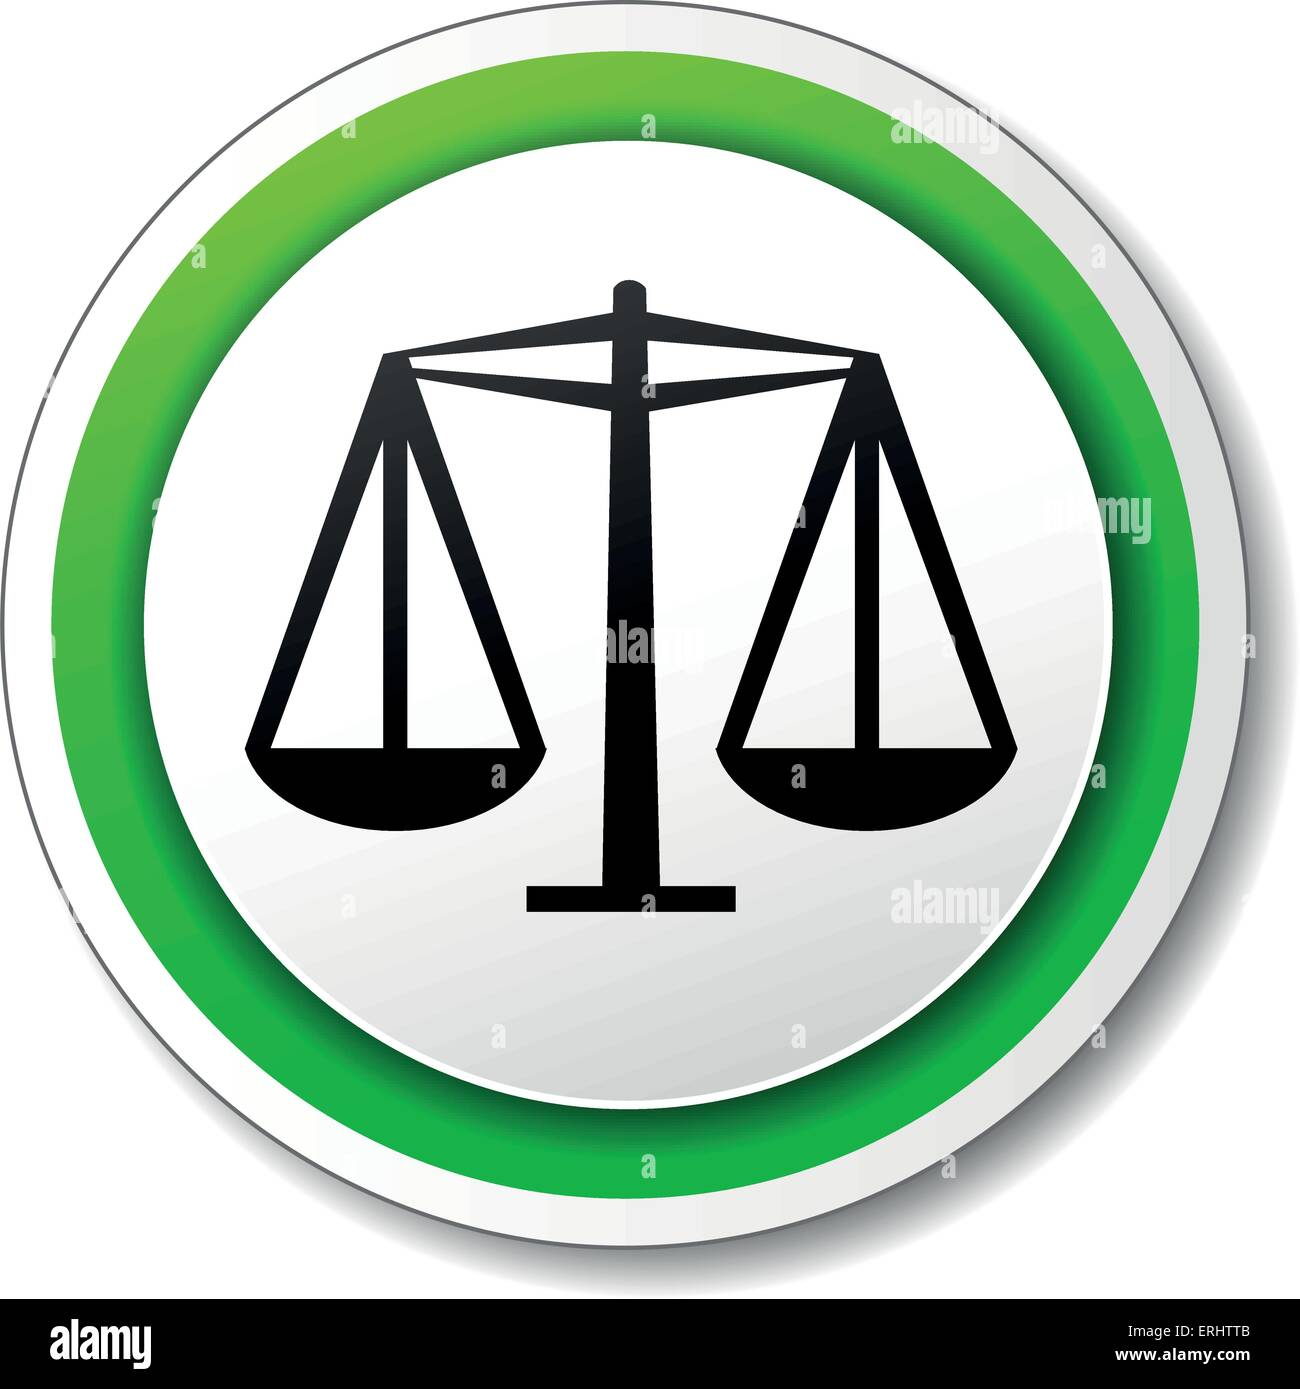 Vector illustration of justice round icon on white background - Stock Image